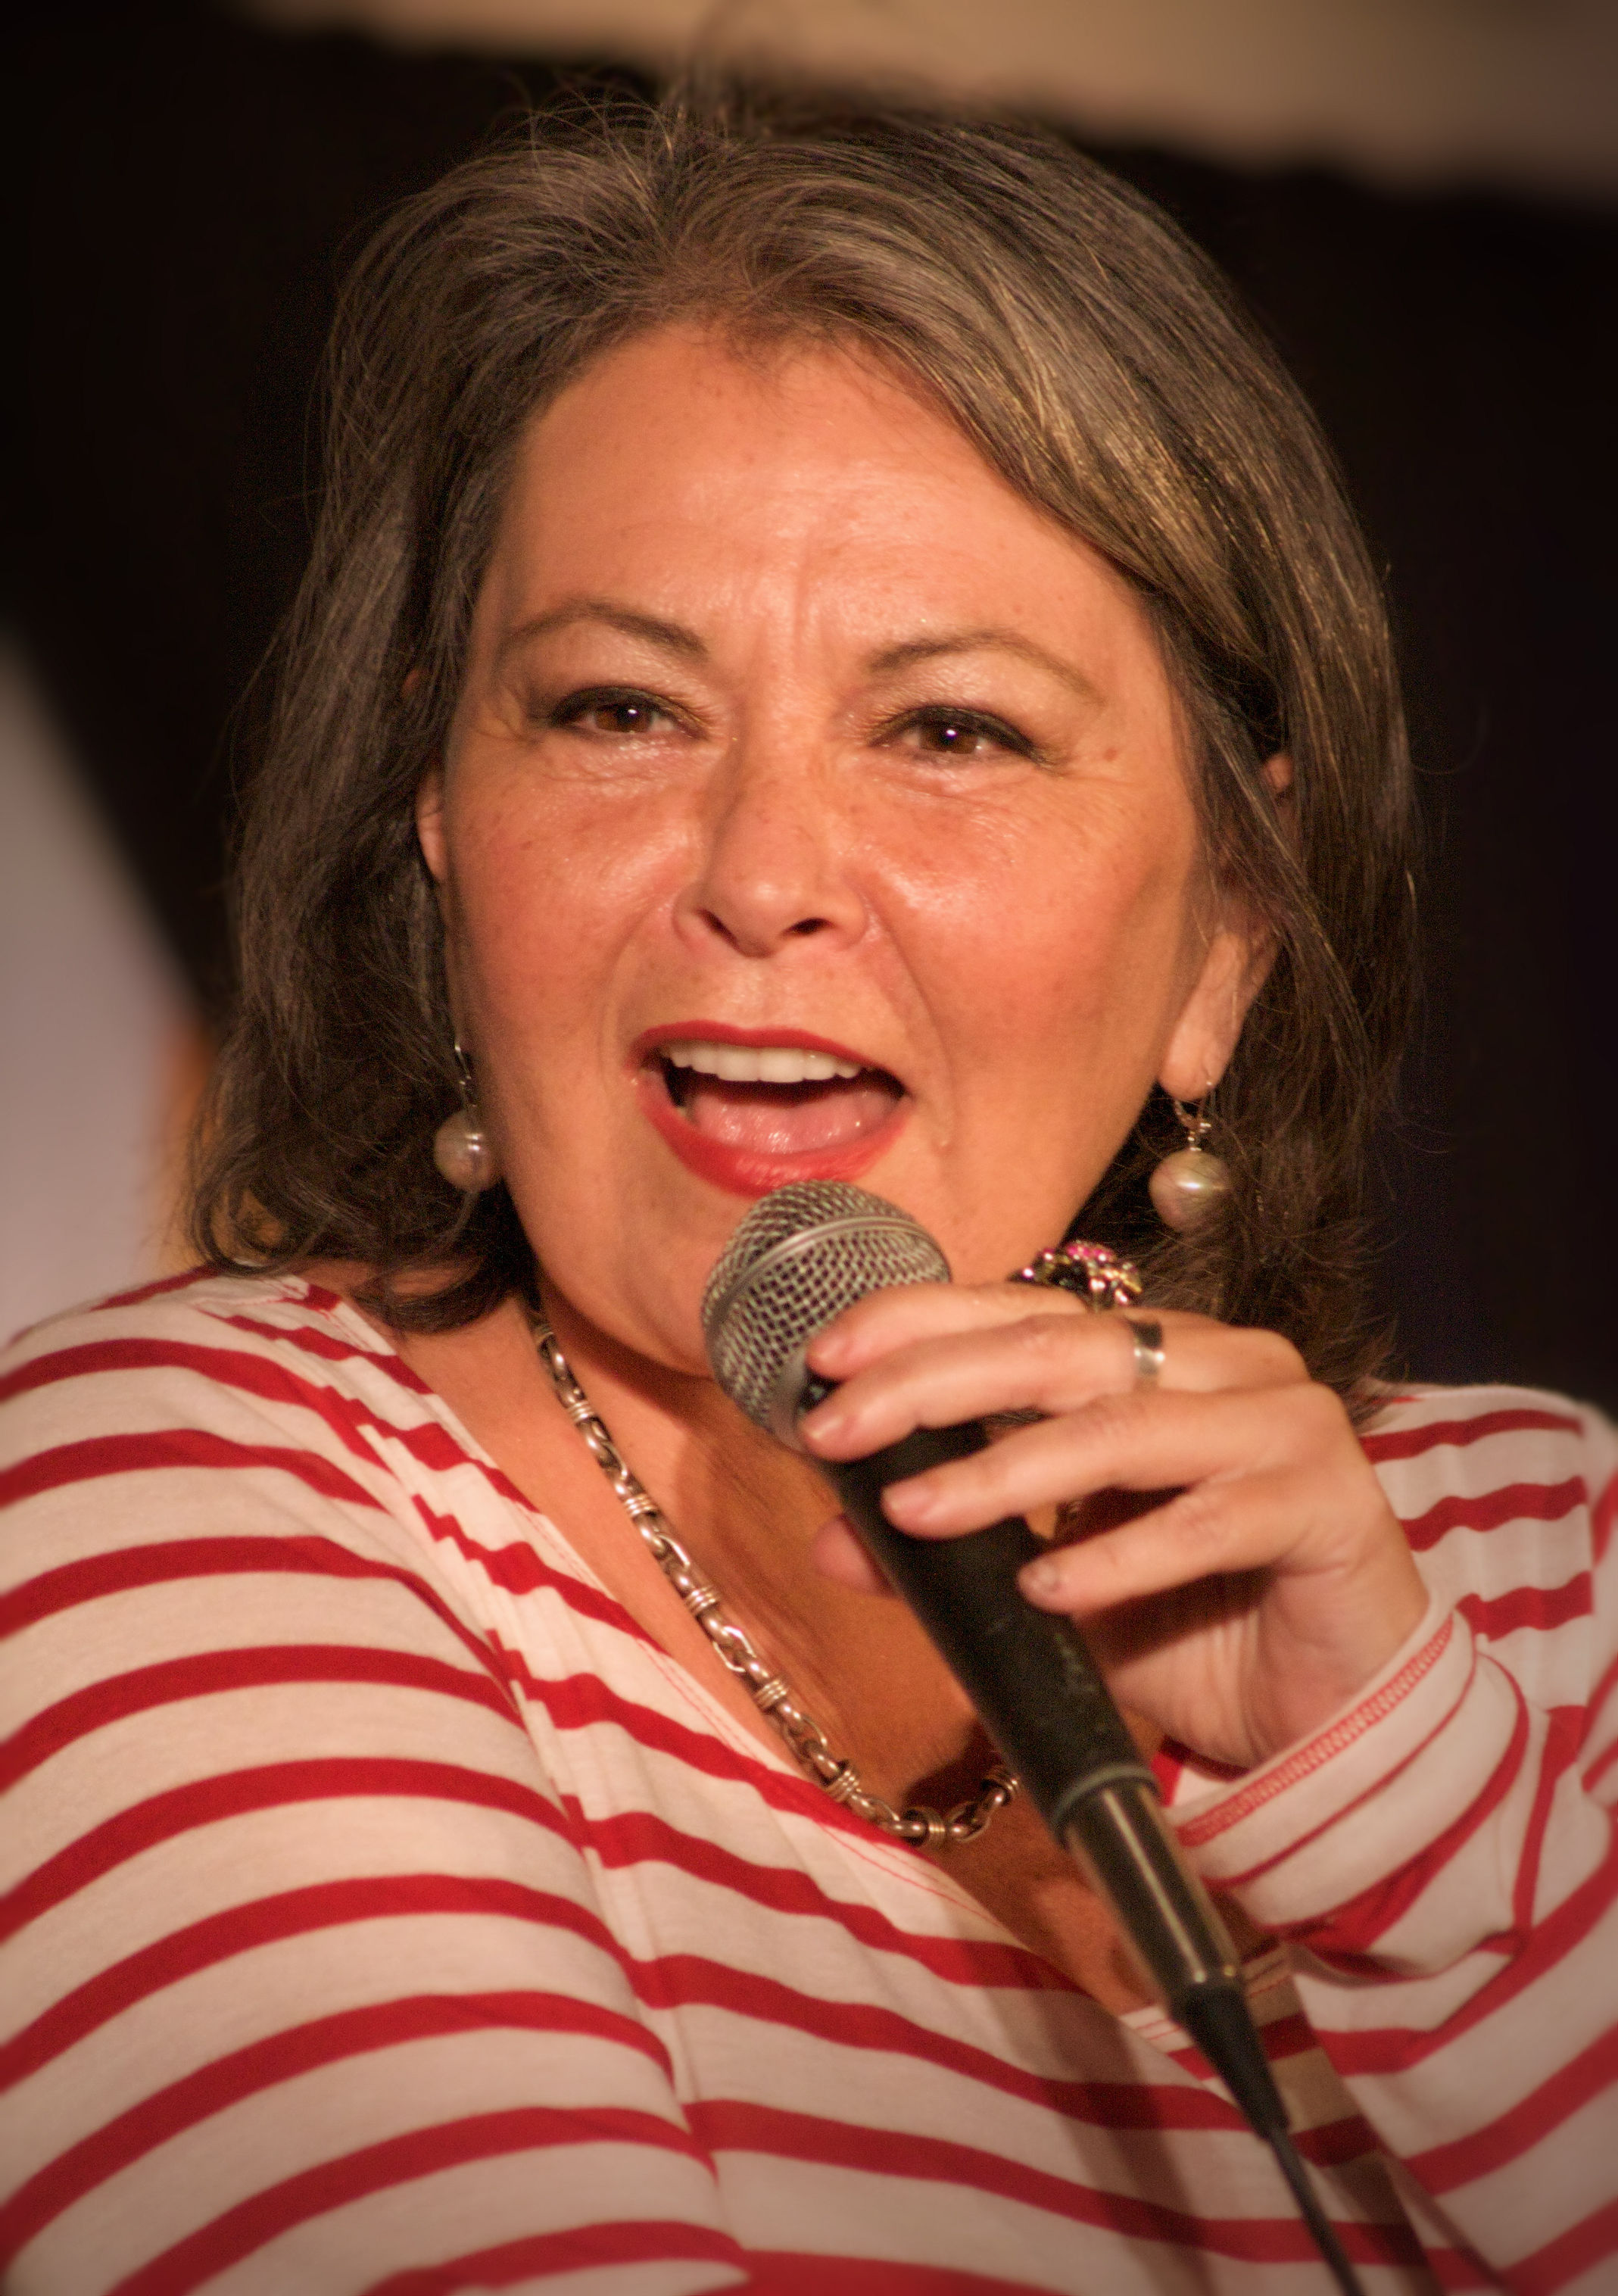 Roseanne Barr at the Hard Rock Café on Maui in 2010. Photograph by Leah Mark.